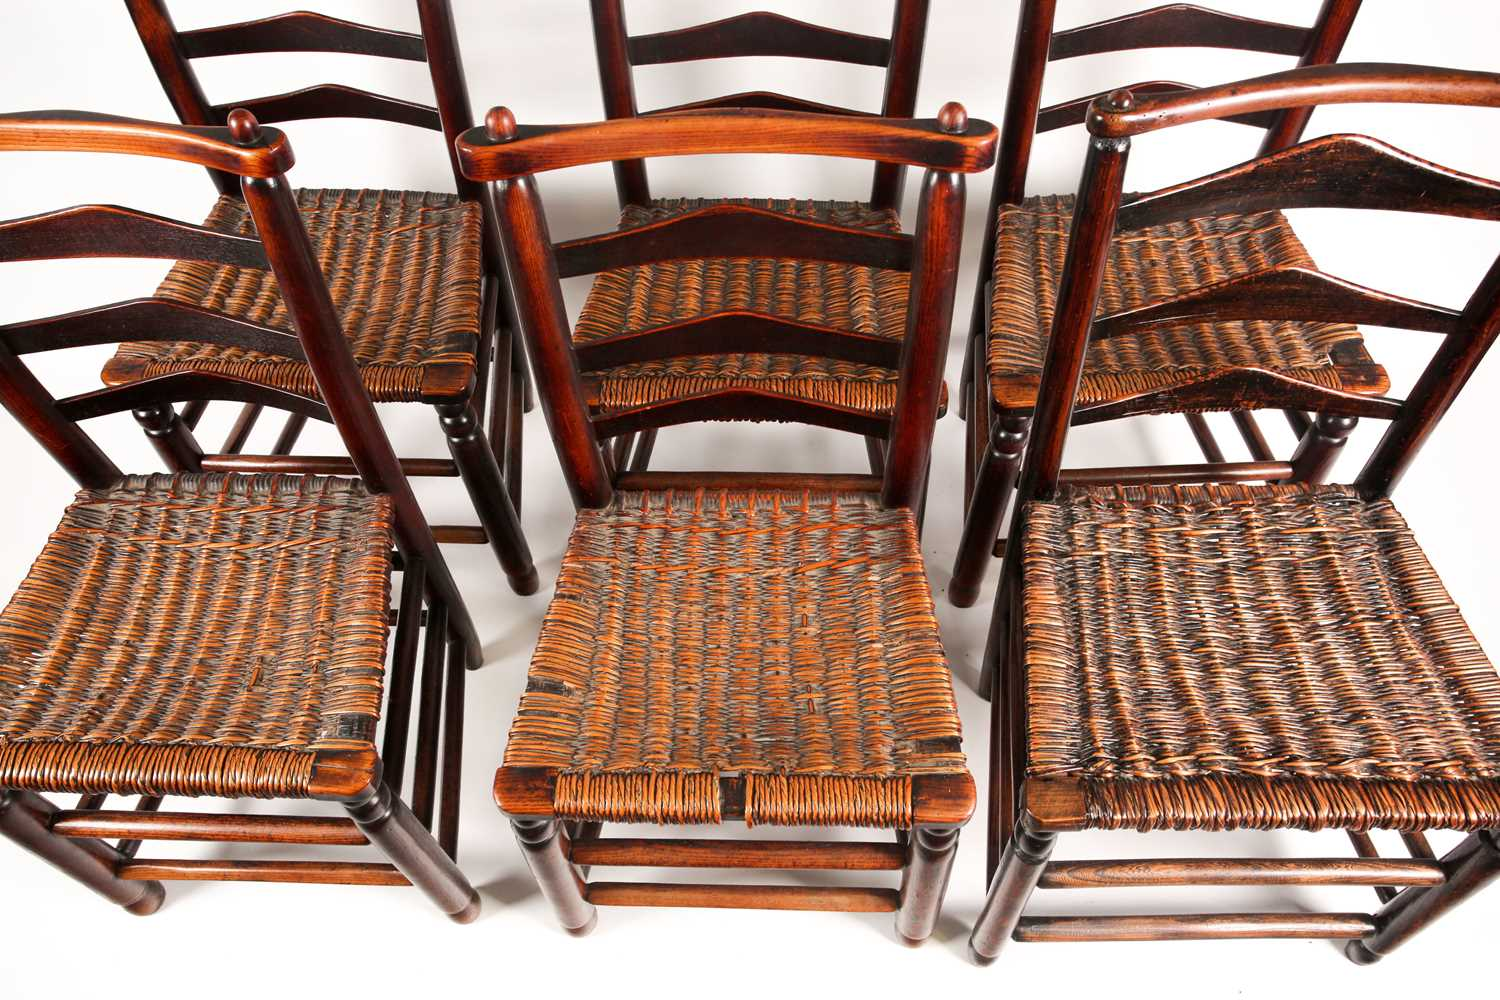 A set of six early 19th-century Macclesfield type ladder back dining chairs with distinctive - Image 2 of 3